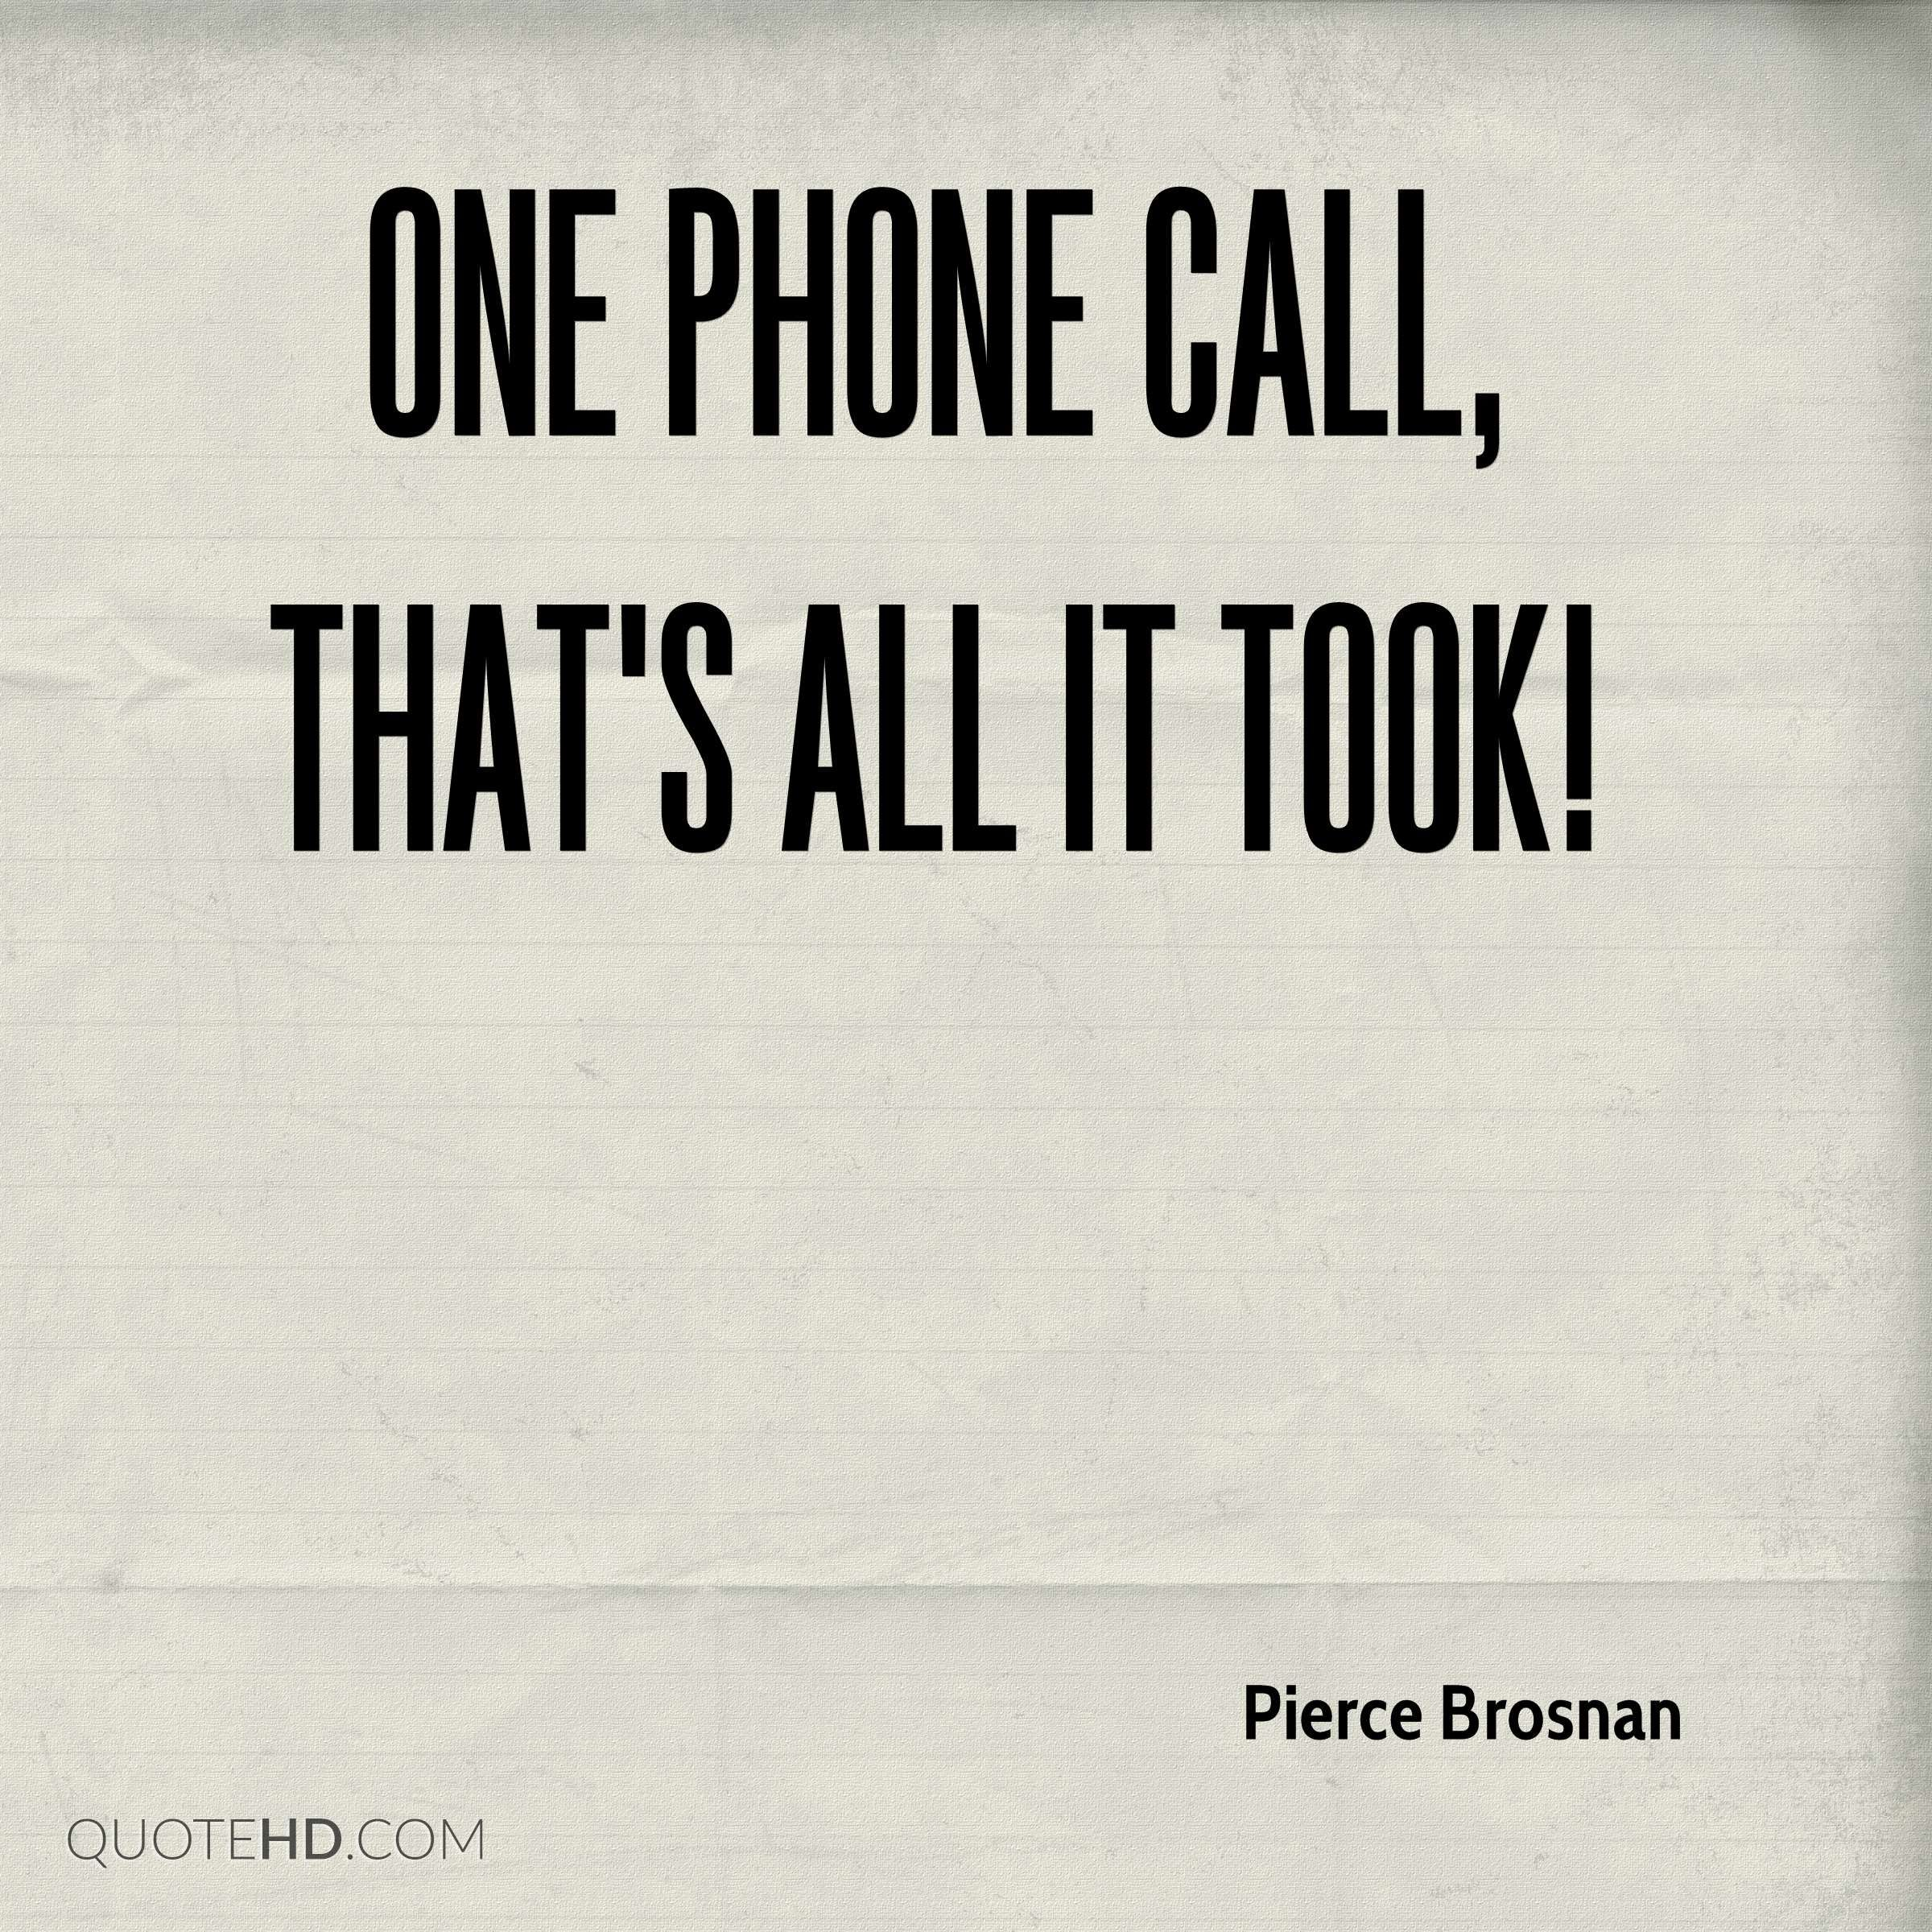 Phone Call Quotes Captivating Piercebrosnanquoteonephonecallthatsallittook 2400×240